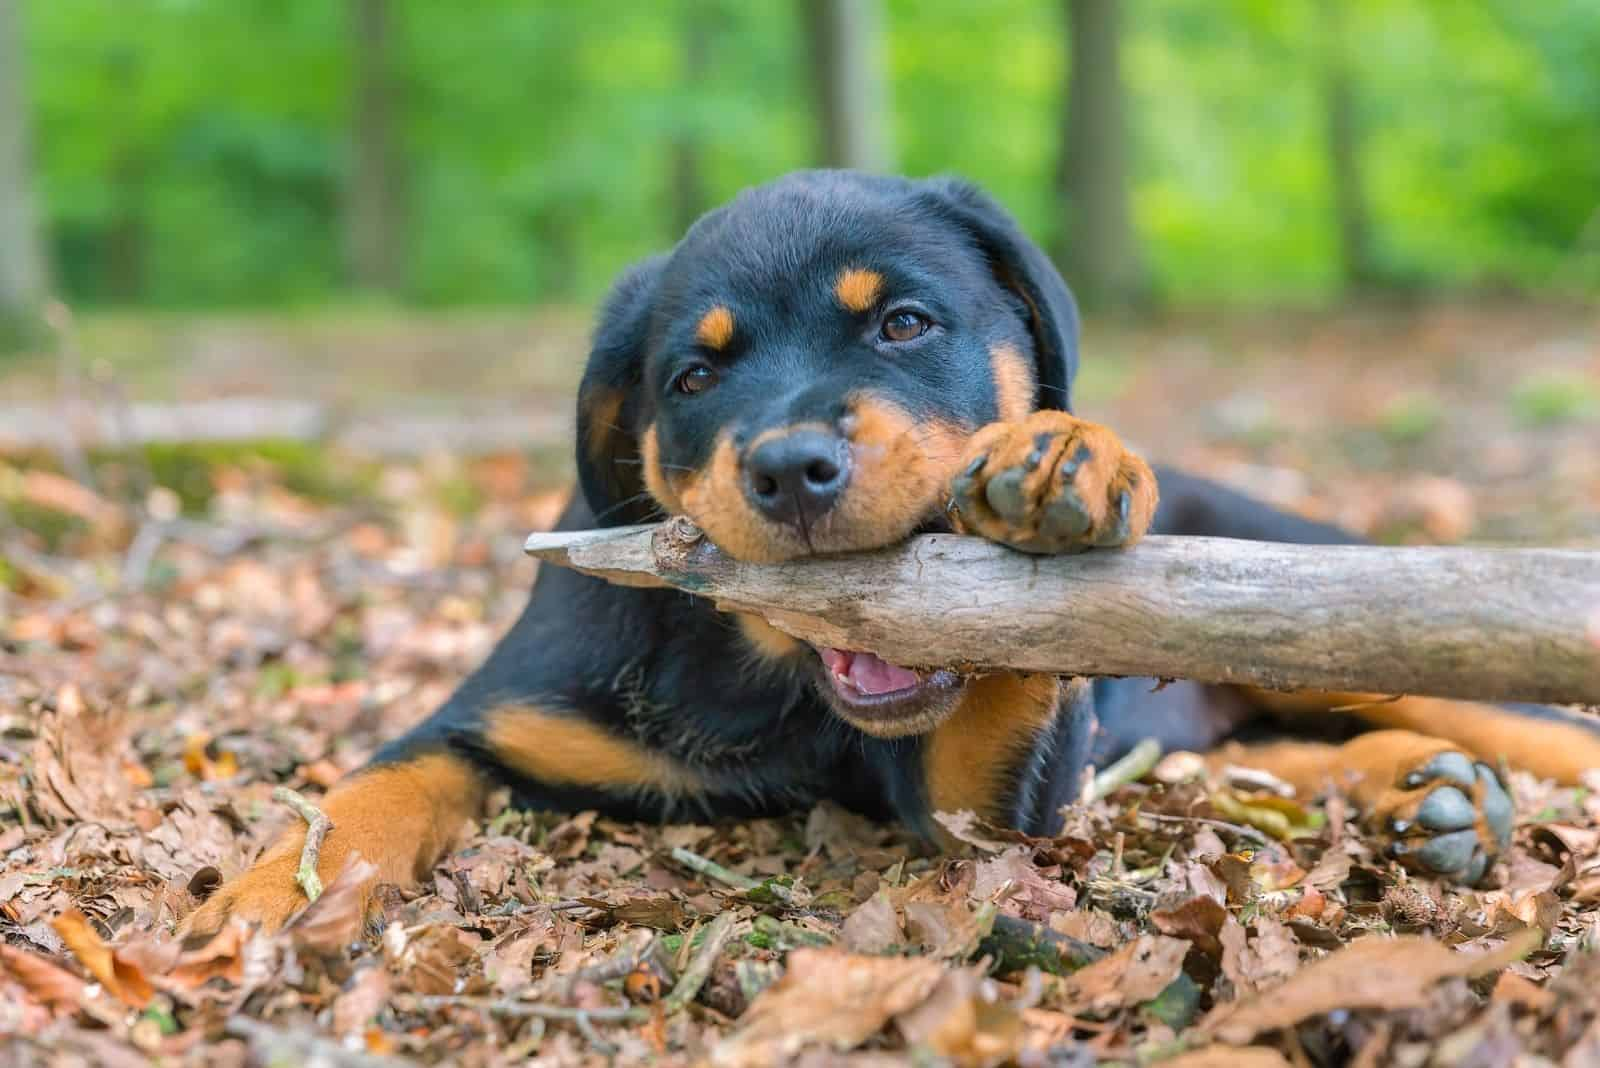 portrait of a rottweiler biting a branch in nature